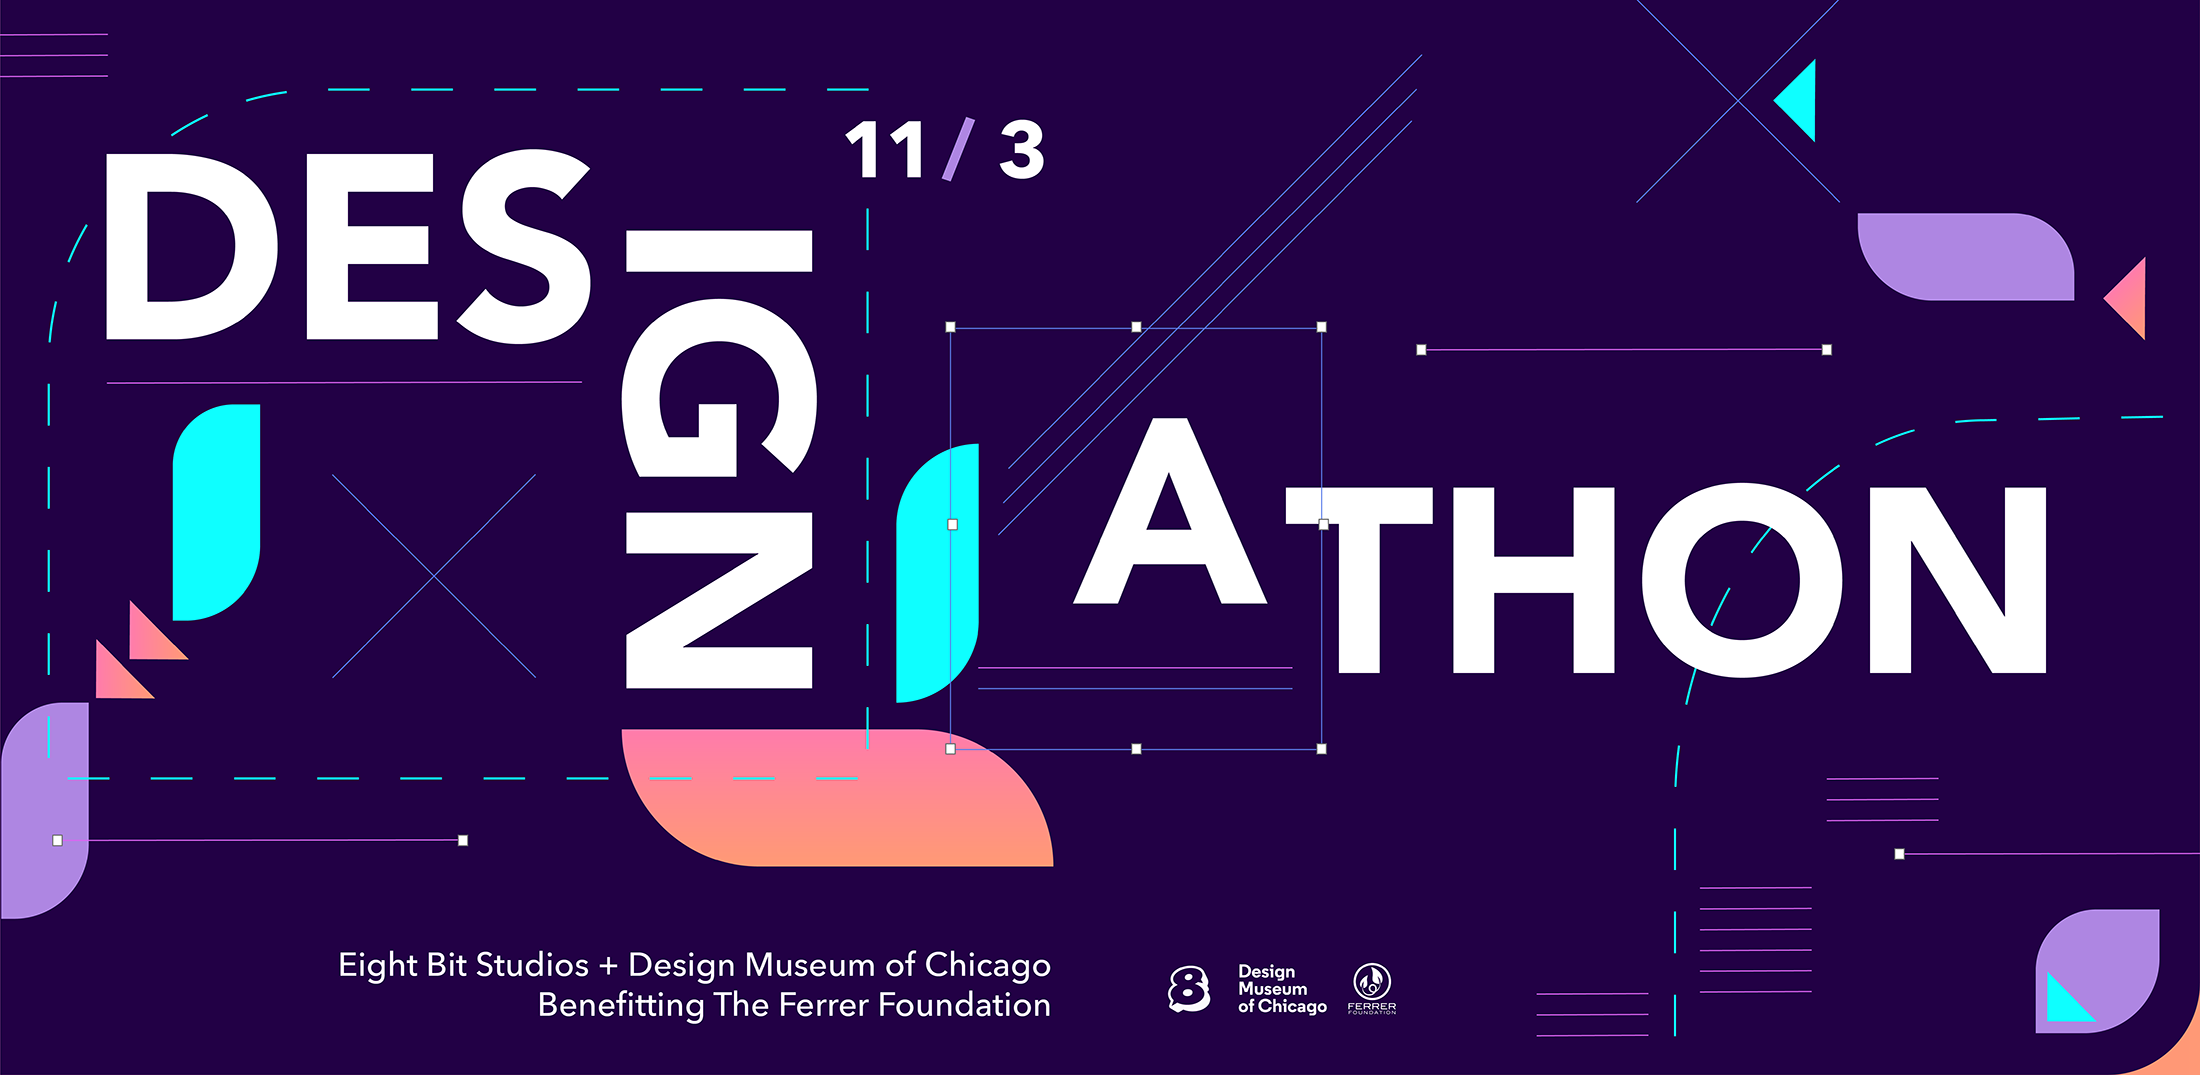 designathonchicago2018.eventbrite.com